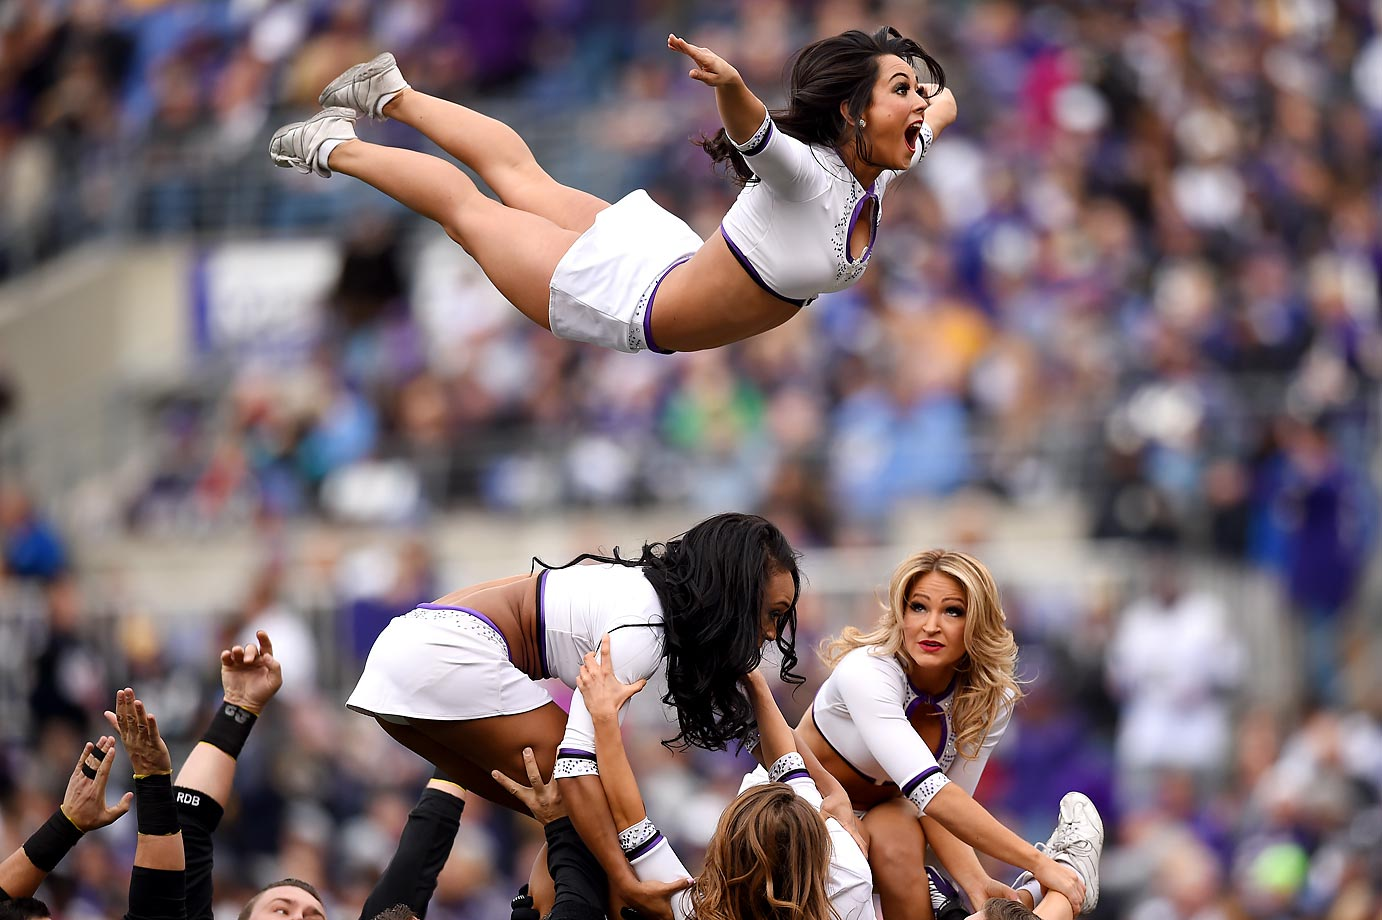 The Ravens cheerleaders perform during the Baltimore-San Diego game.